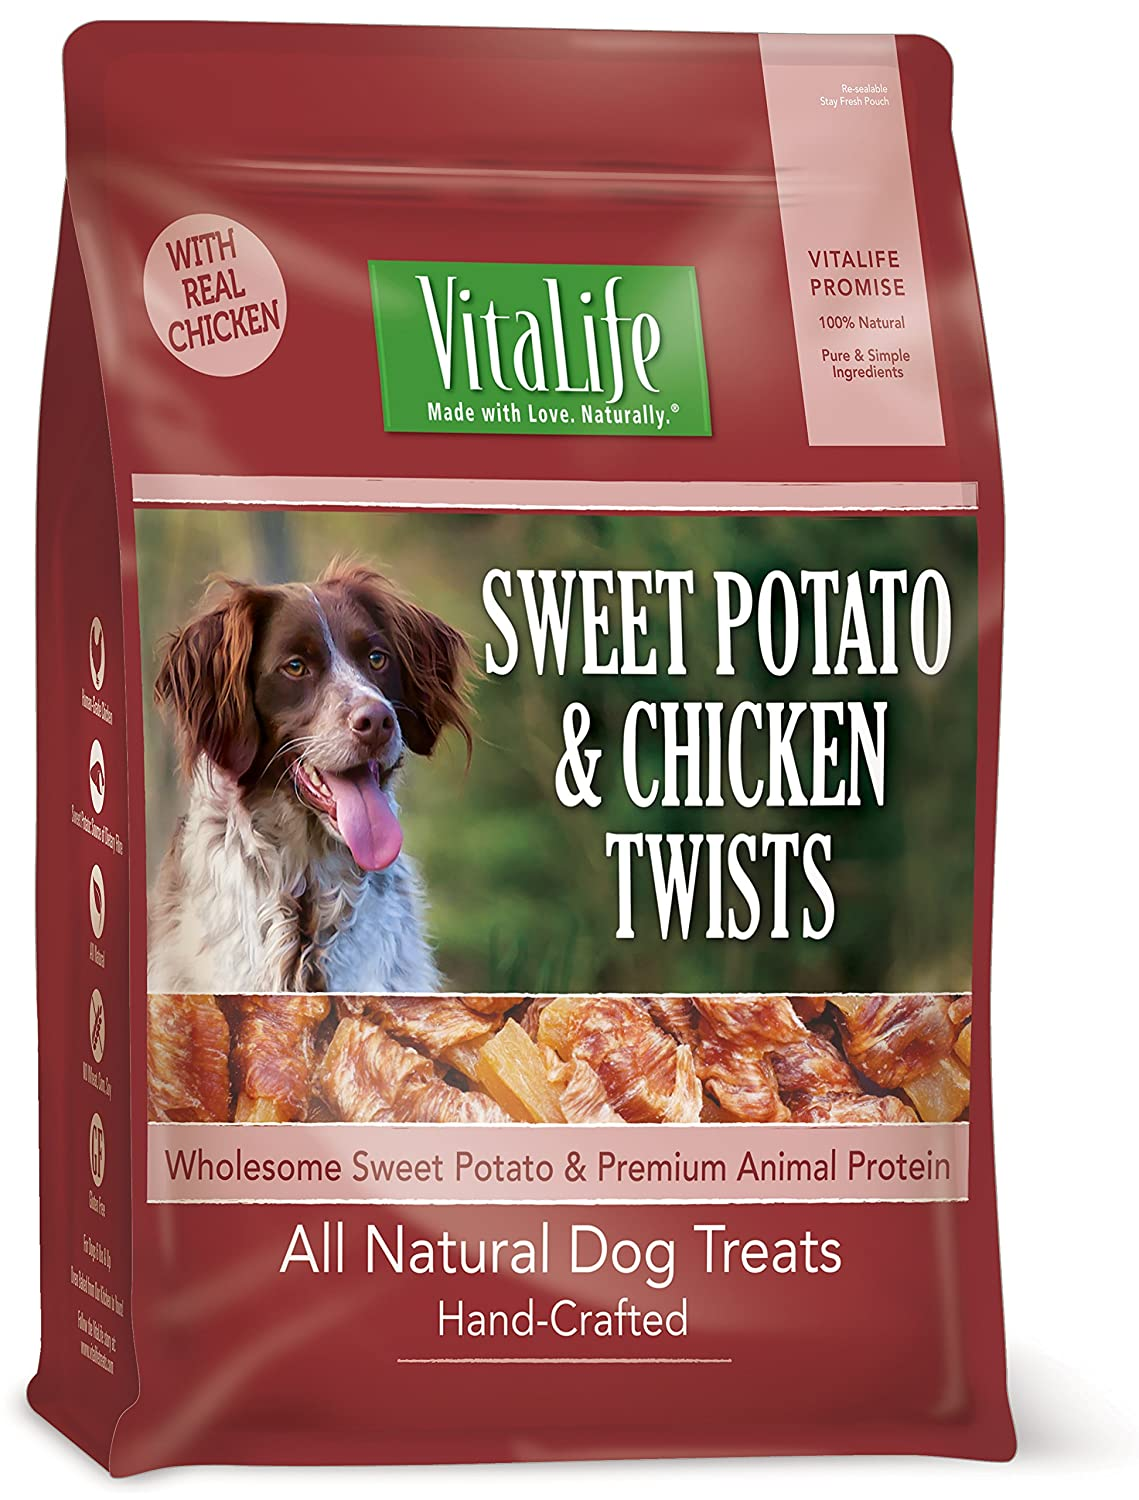 VitaLife Wraps Dog Treat - Natural, Grain Free, Sweet Potato & Chicken, 908 g Normerica AKR-VITA-6X908G-CKNSWPOT-PUR